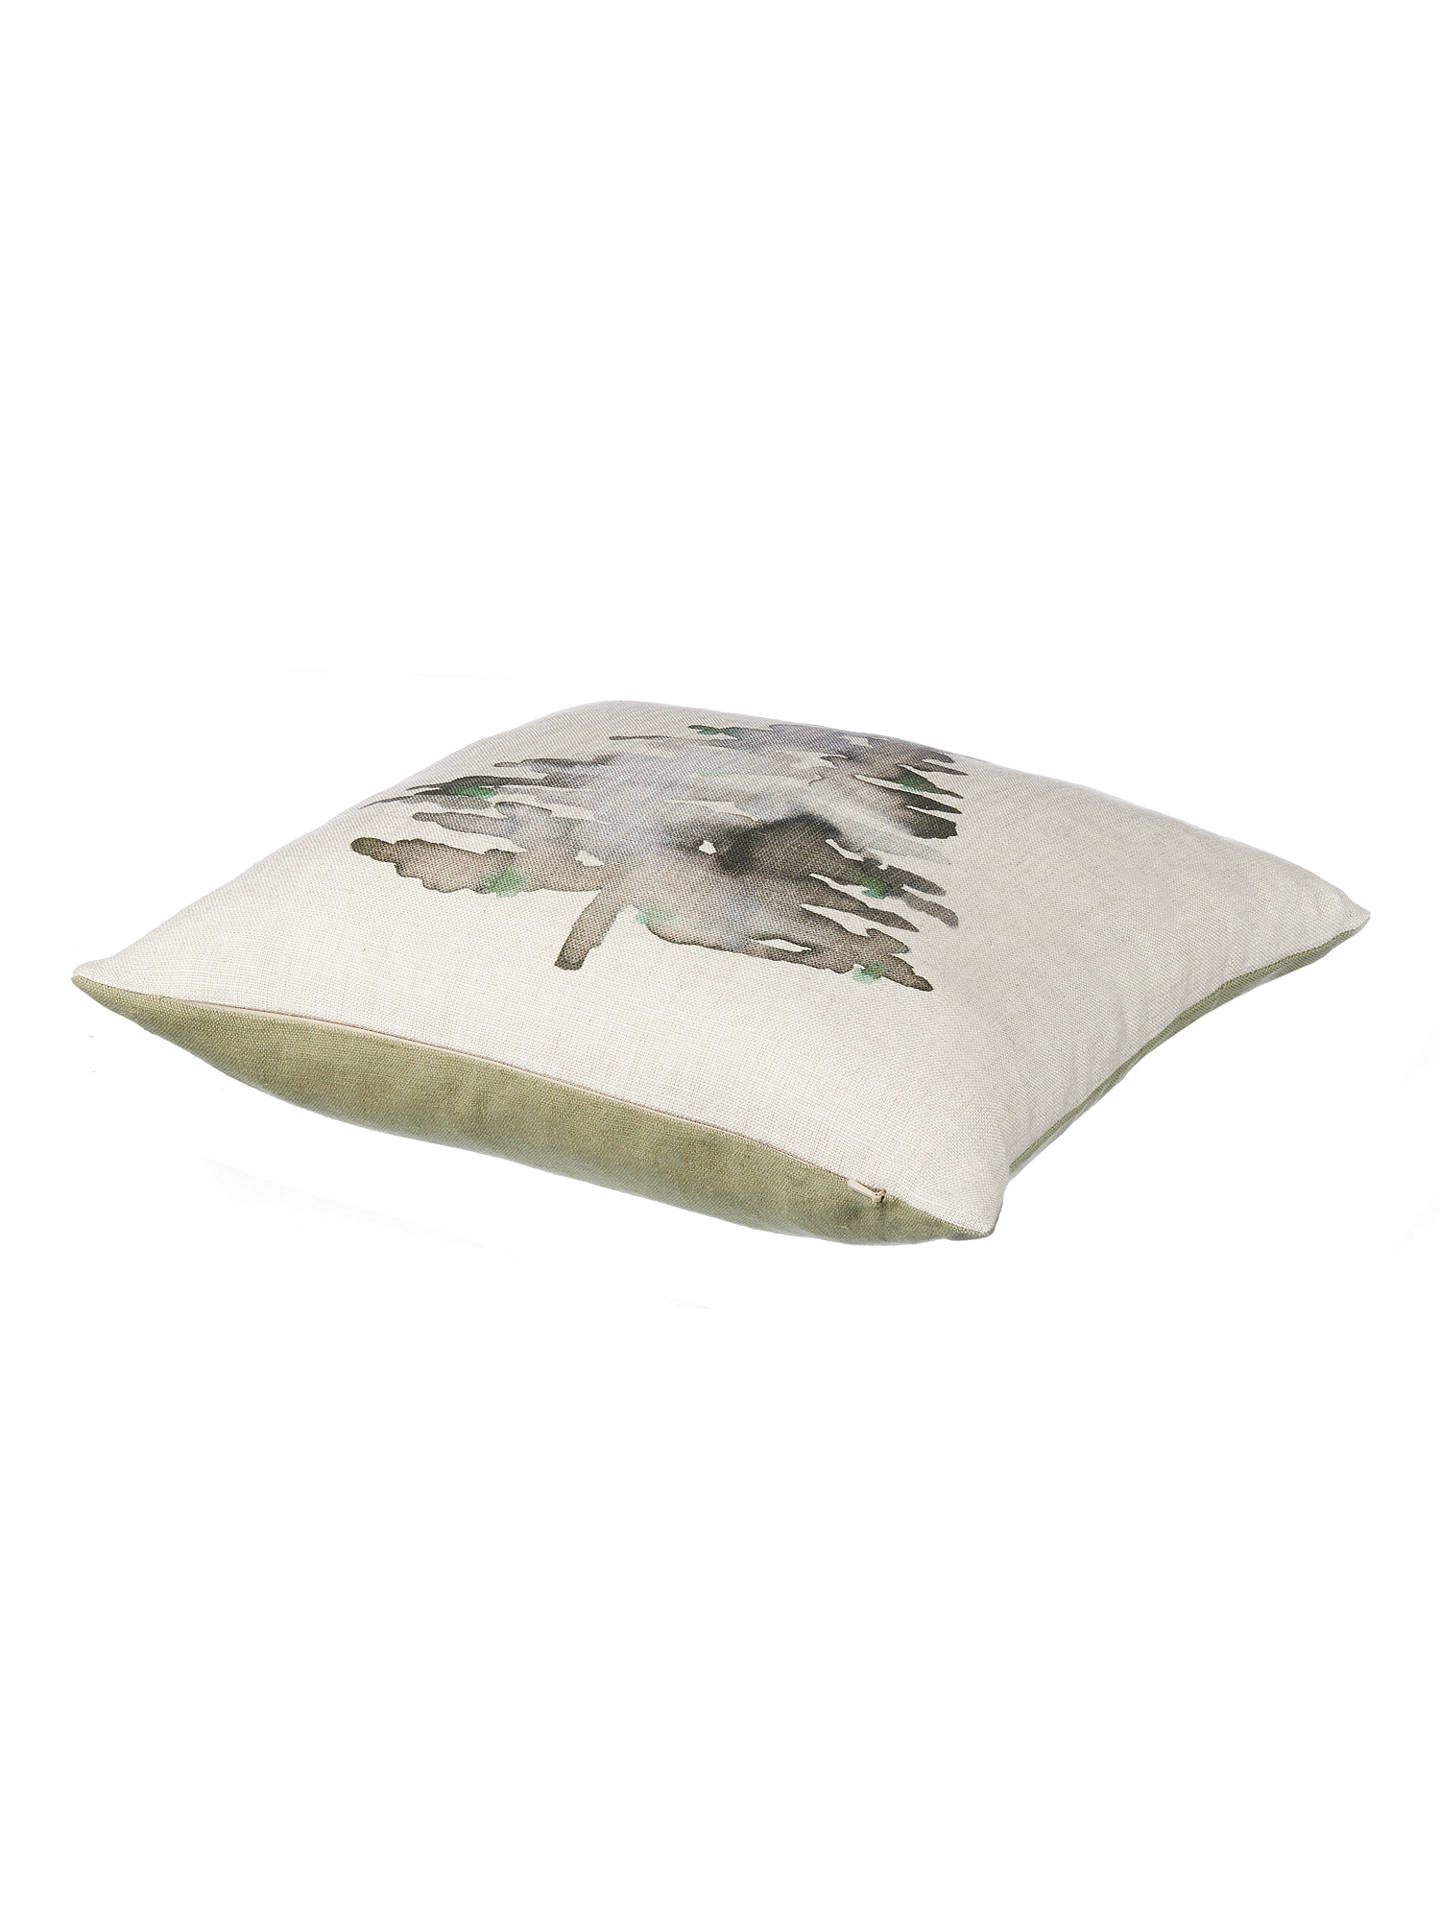 BuyJohn Lewis Highland Myths Christmas Tree Cushion, Evergreen Online at johnlewis.com